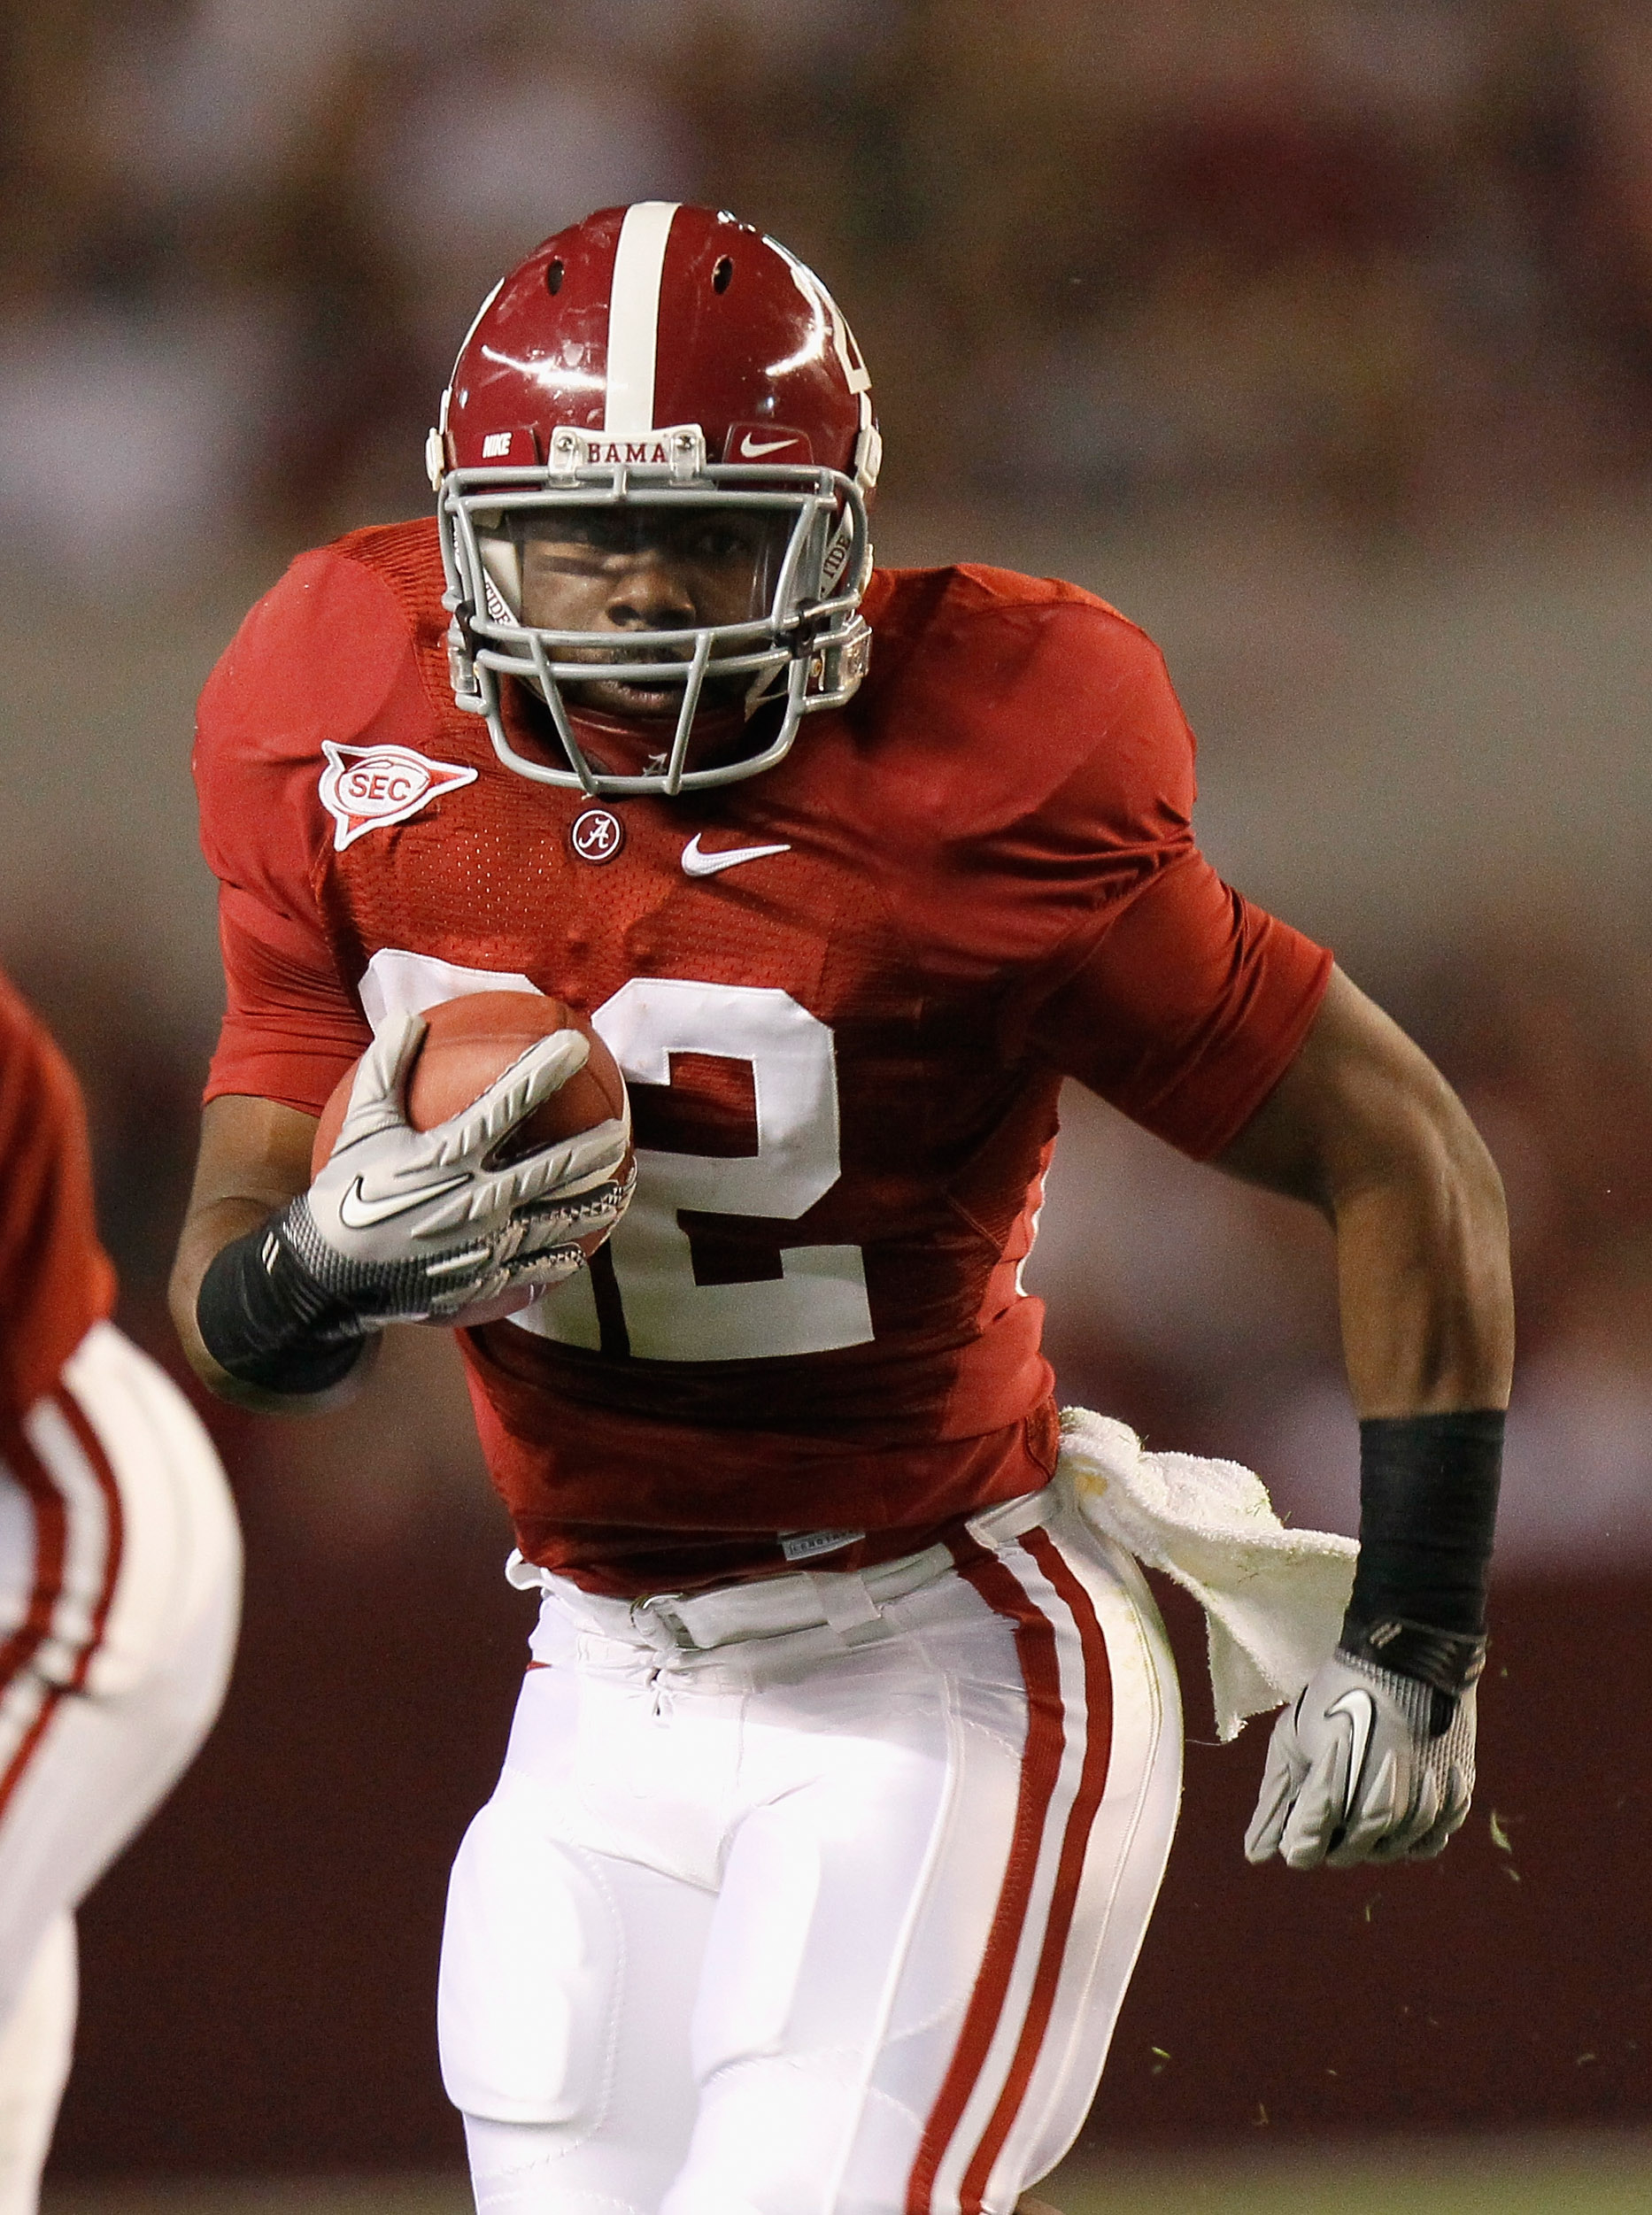 TUSCALOOSA, AL - OCTOBER 16:  Mark Ingram #22 of the Alabama Crimson Tide against the Ole Miss Rebels at Bryant-Denny Stadium on October 16, 2010 in Tuscaloosa, Alabama.  (Photo by Kevin C. Cox/Getty Images)